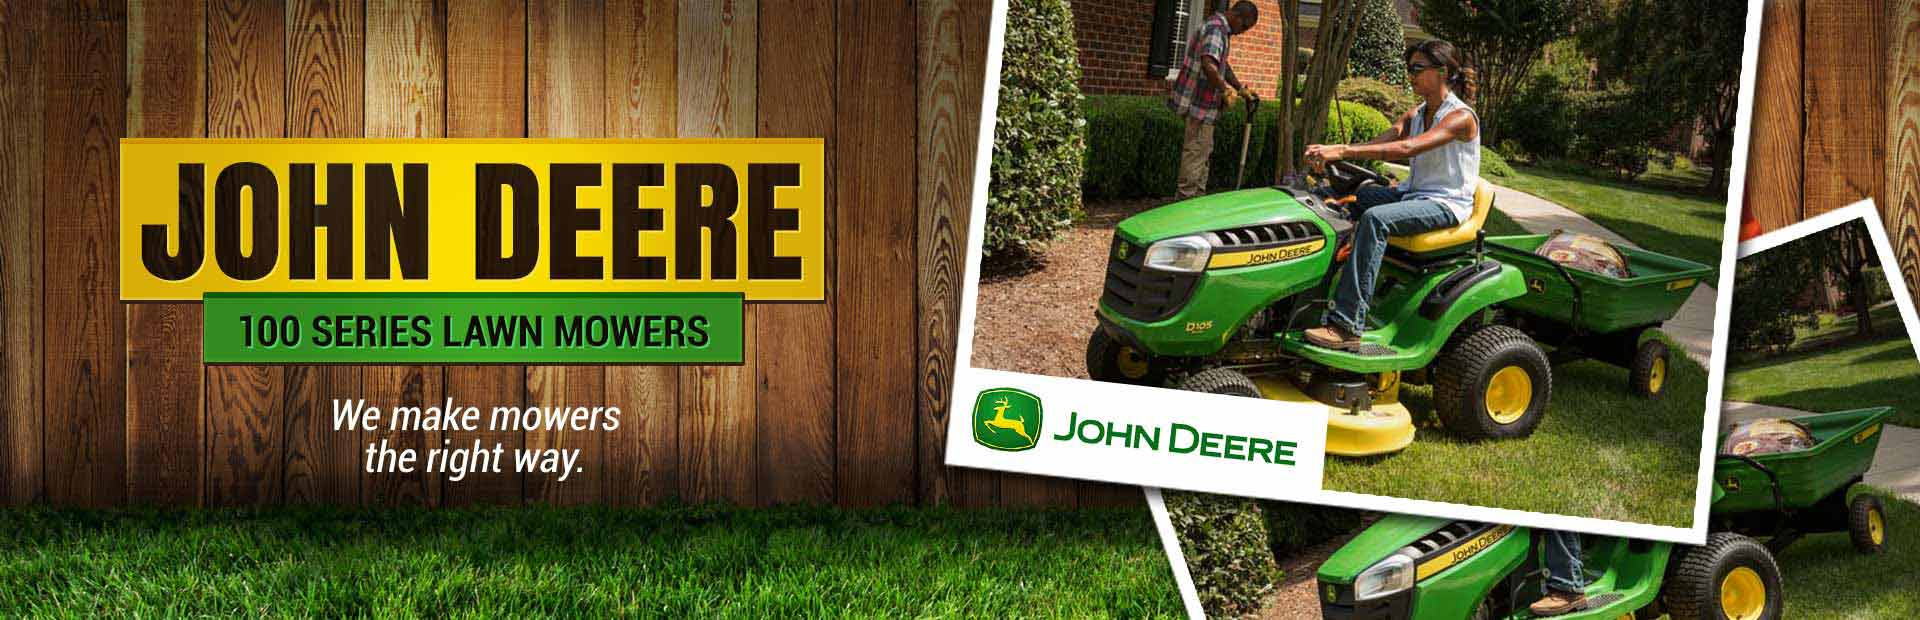 John Deere 100 Series Lawn Mowers: Click here to view our selection!